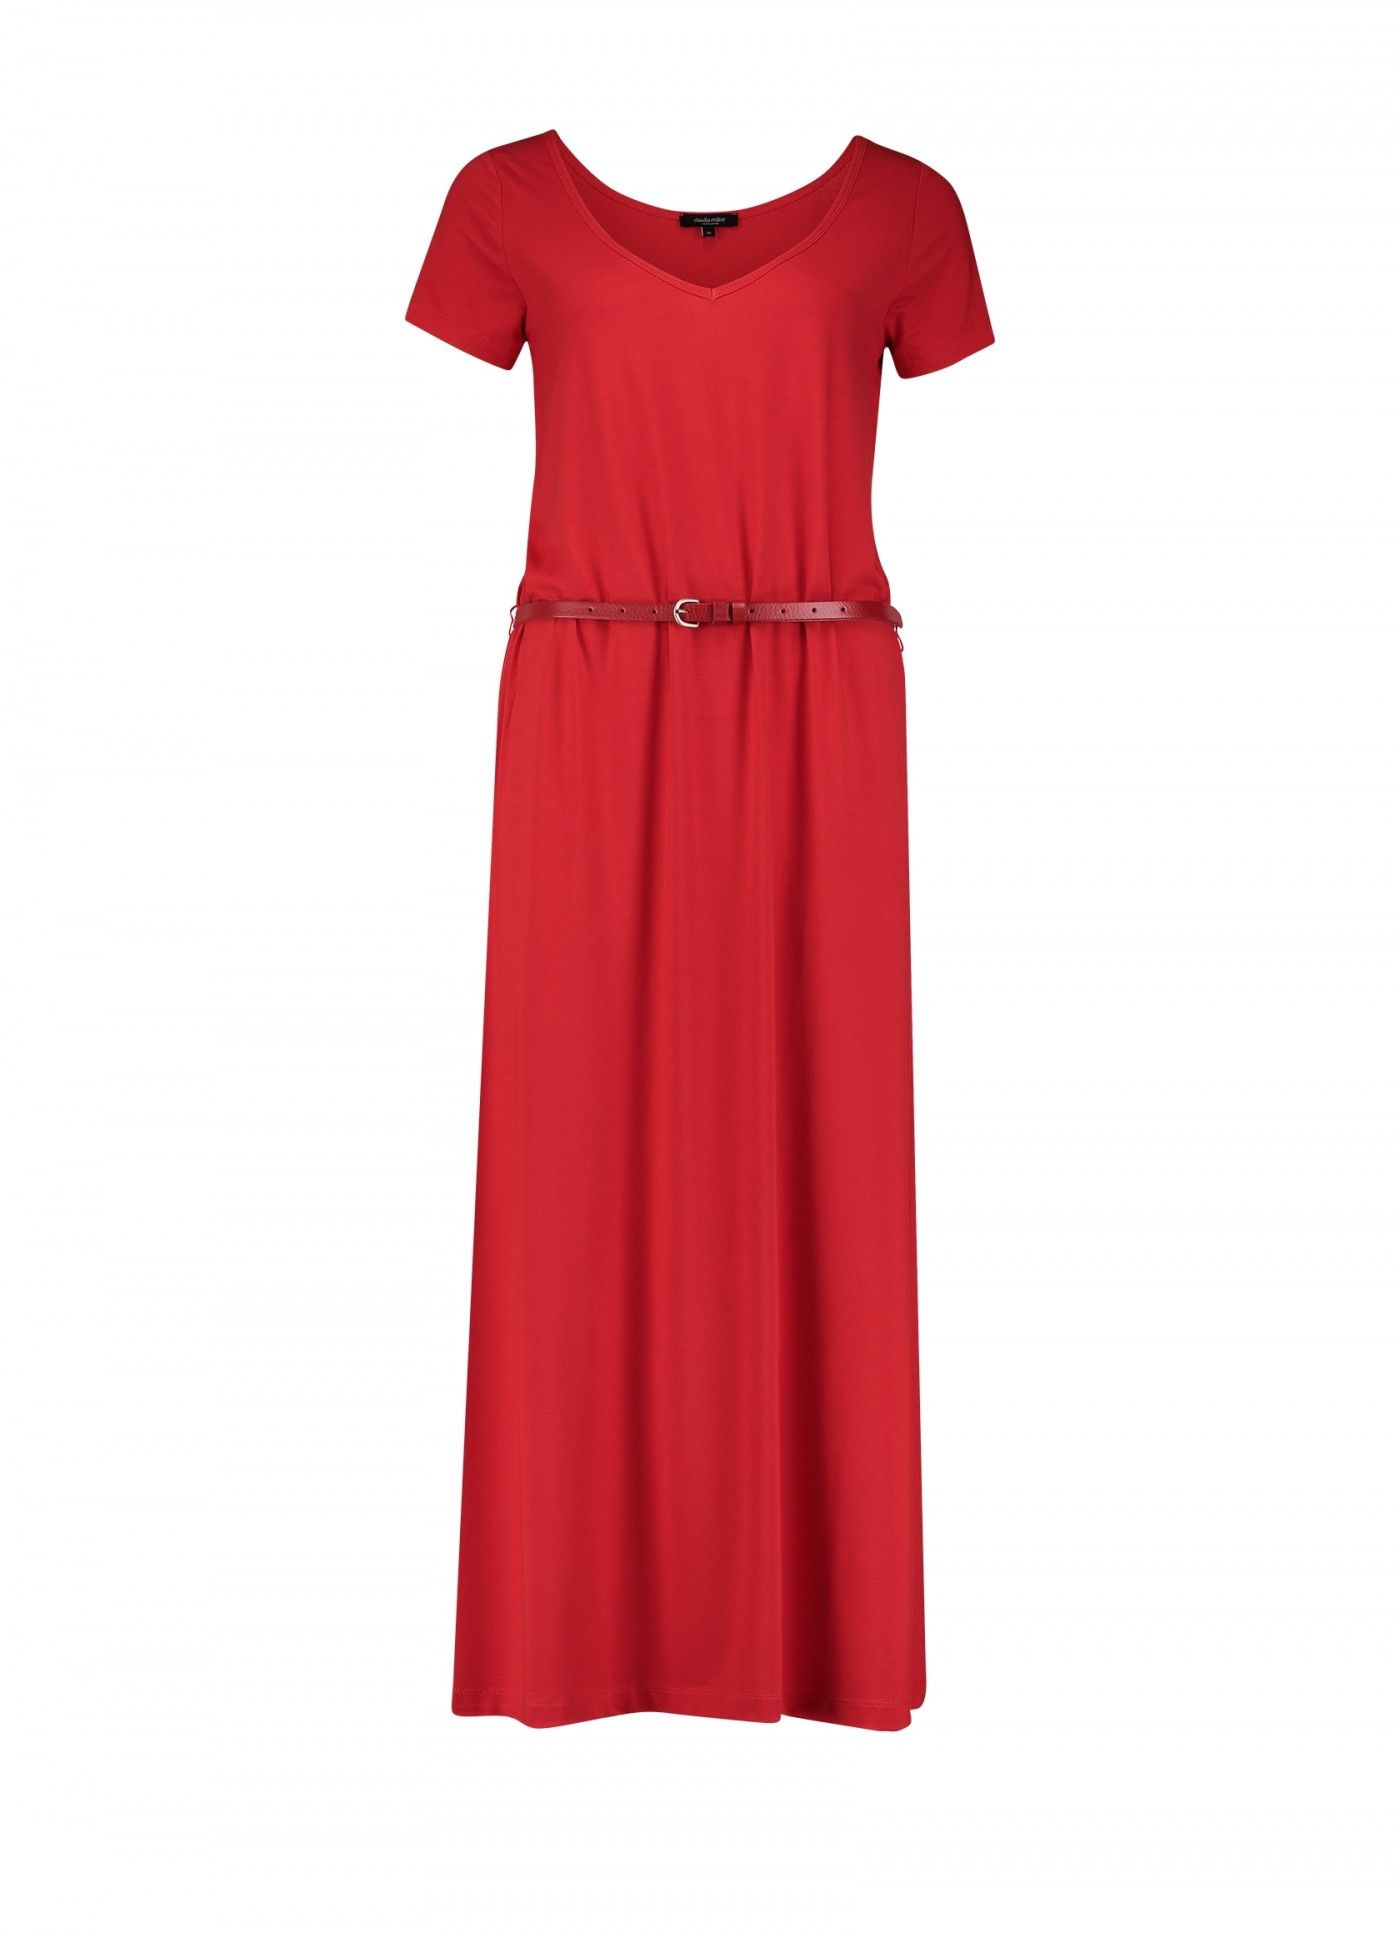 Jersey Maxi Jurk.Jersey Maxi Jurk Claudia Strater Claudia Strater My Style Of